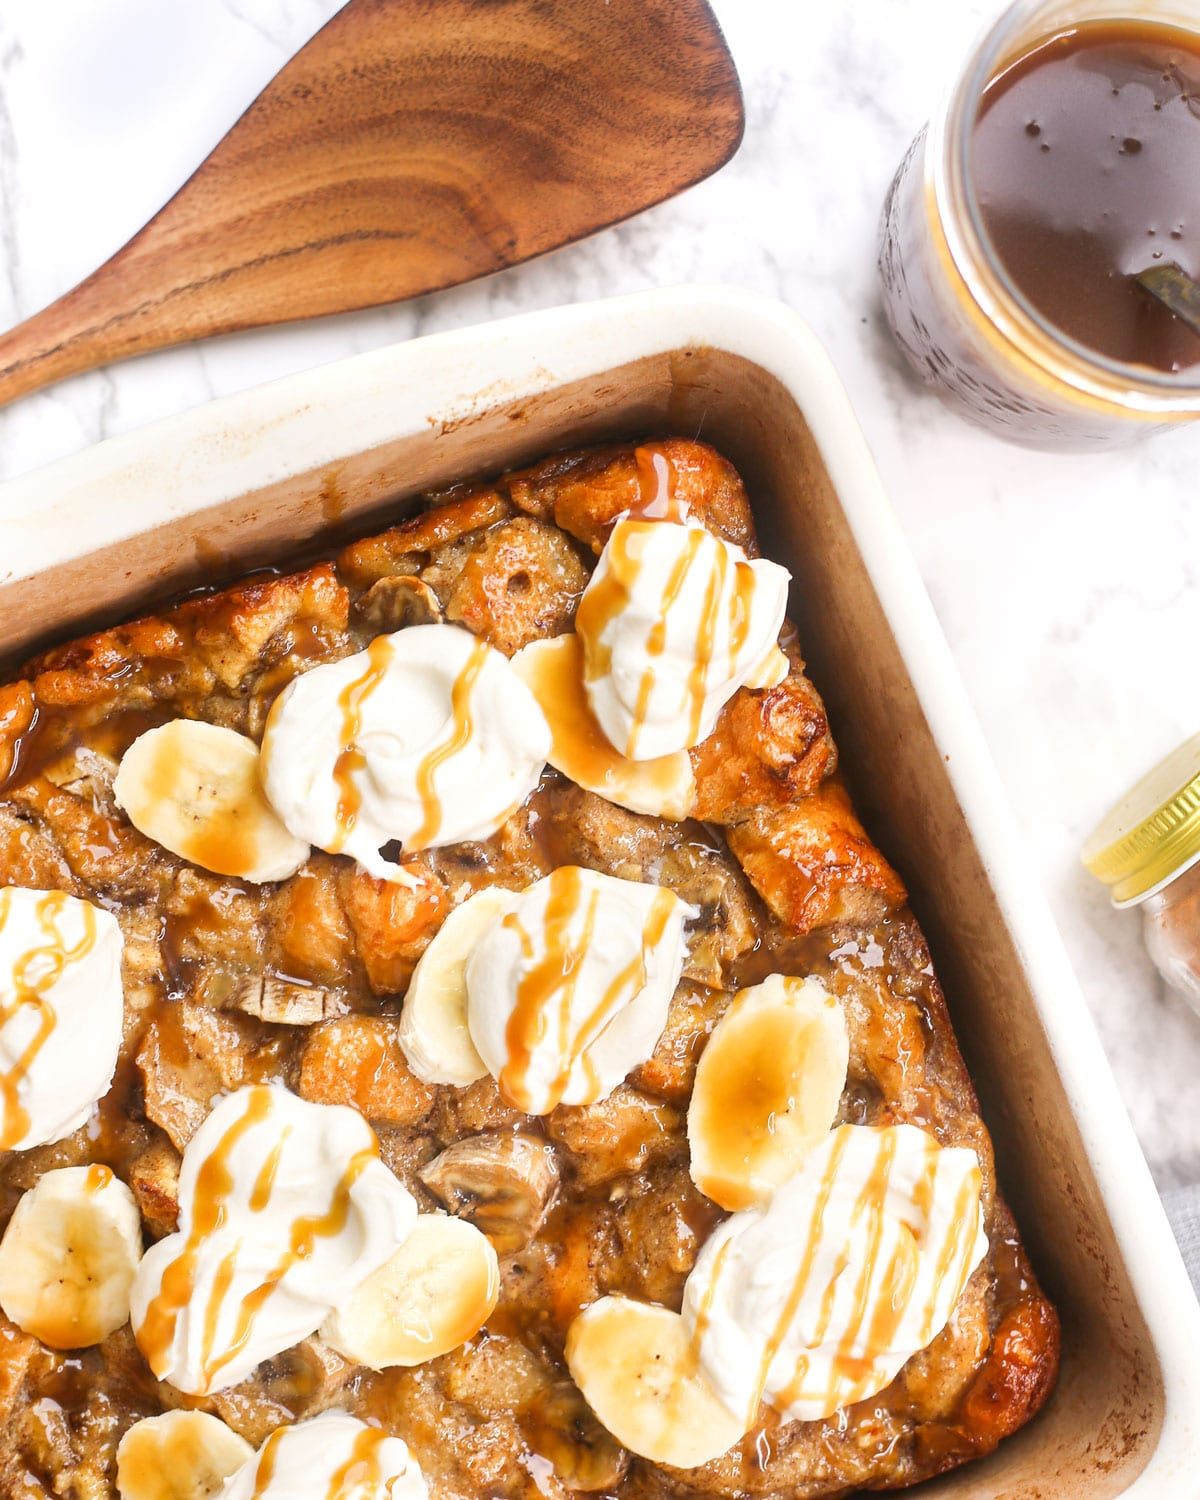 a casserole dish of banana bread pudding topped with whipped cream and caramel